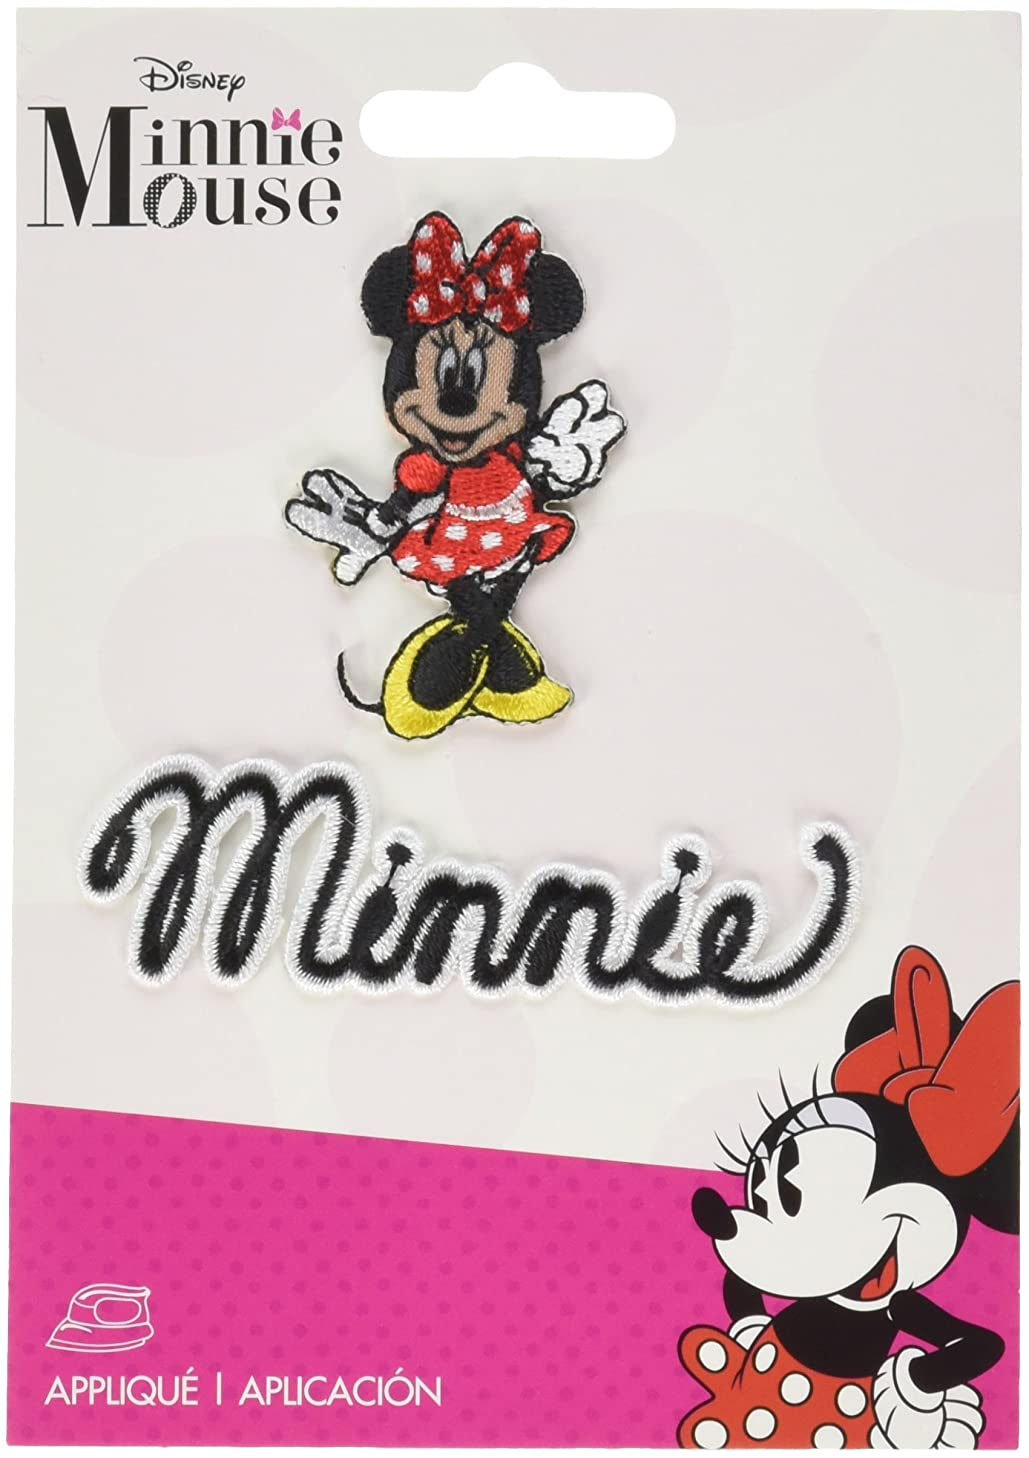 Wrights 19311550001 Disney Mickey Mouse Iron-On Applique-Minnie Mouse Body W/Script